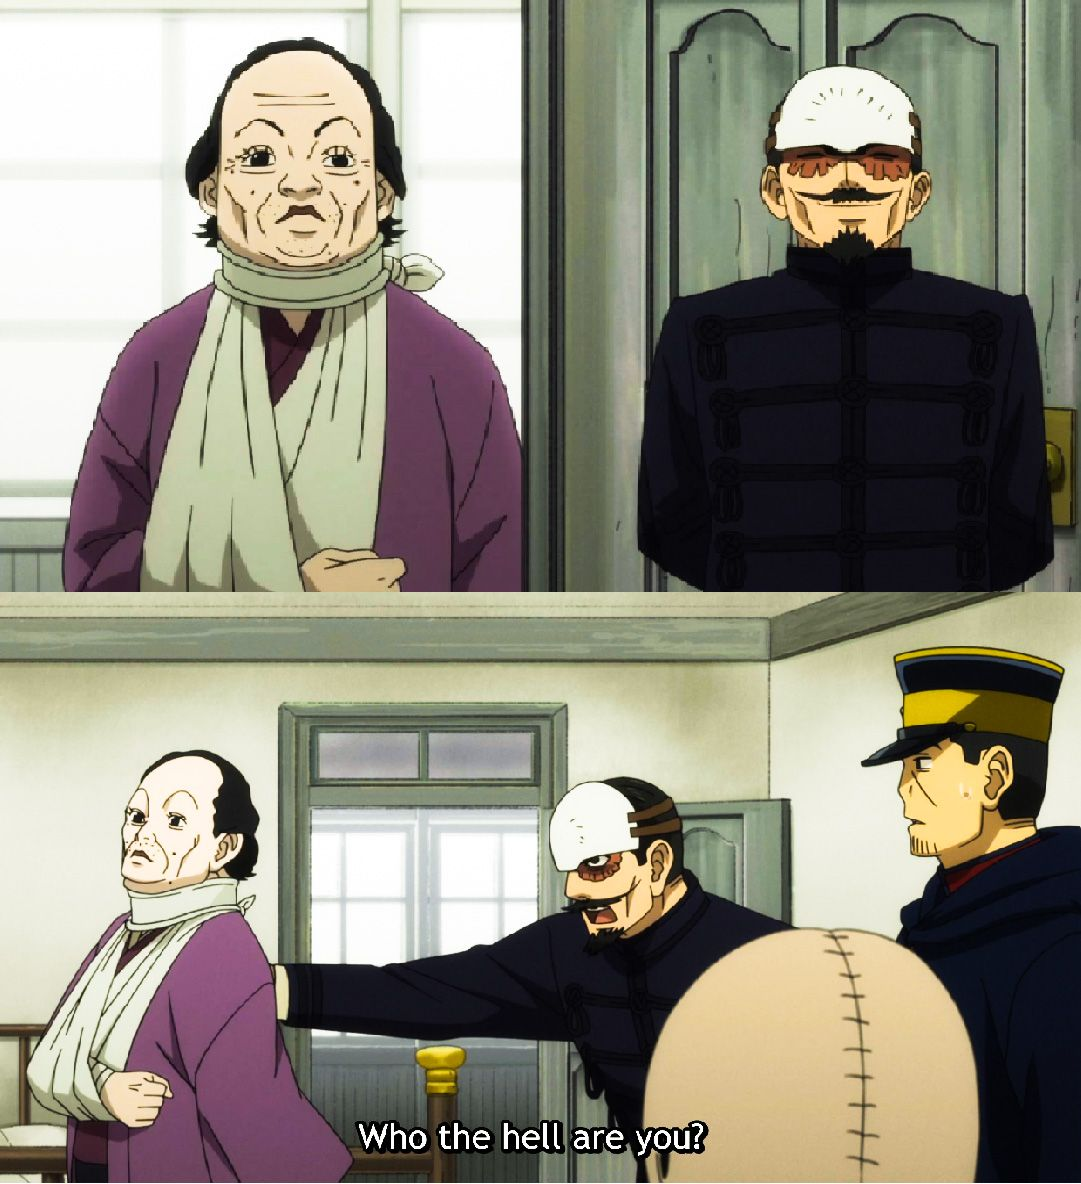 golden kamuy Recent anime, Favorite character